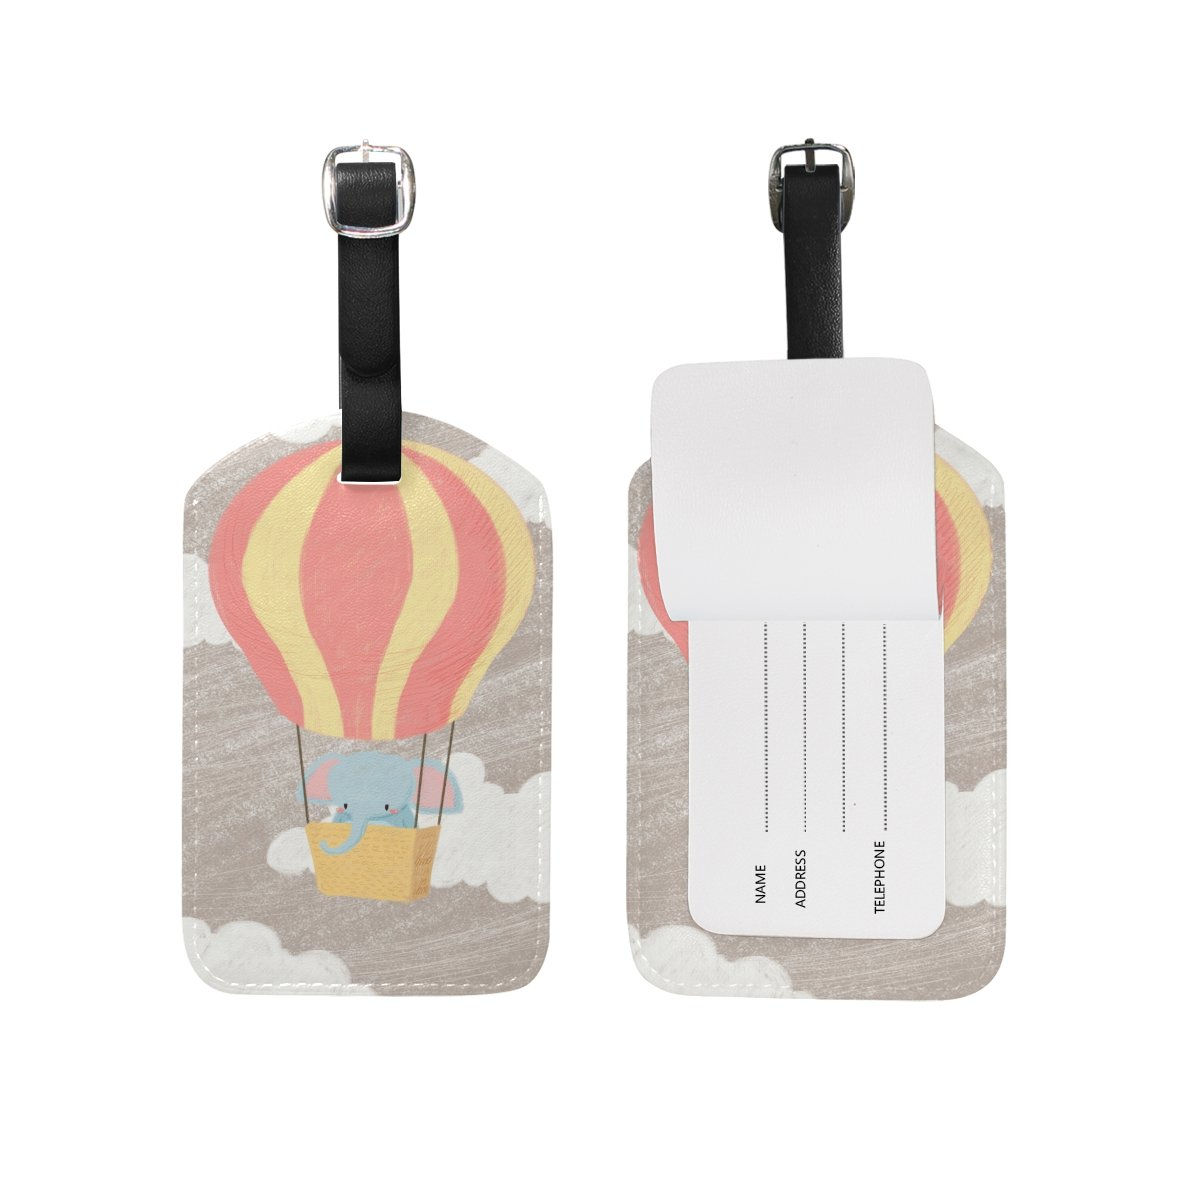 1Pcs Saobao Travel Luggage Tag Elephant With Hot Air Balloon PU Leather Baggage Suitcase Travel ID Bag Tag